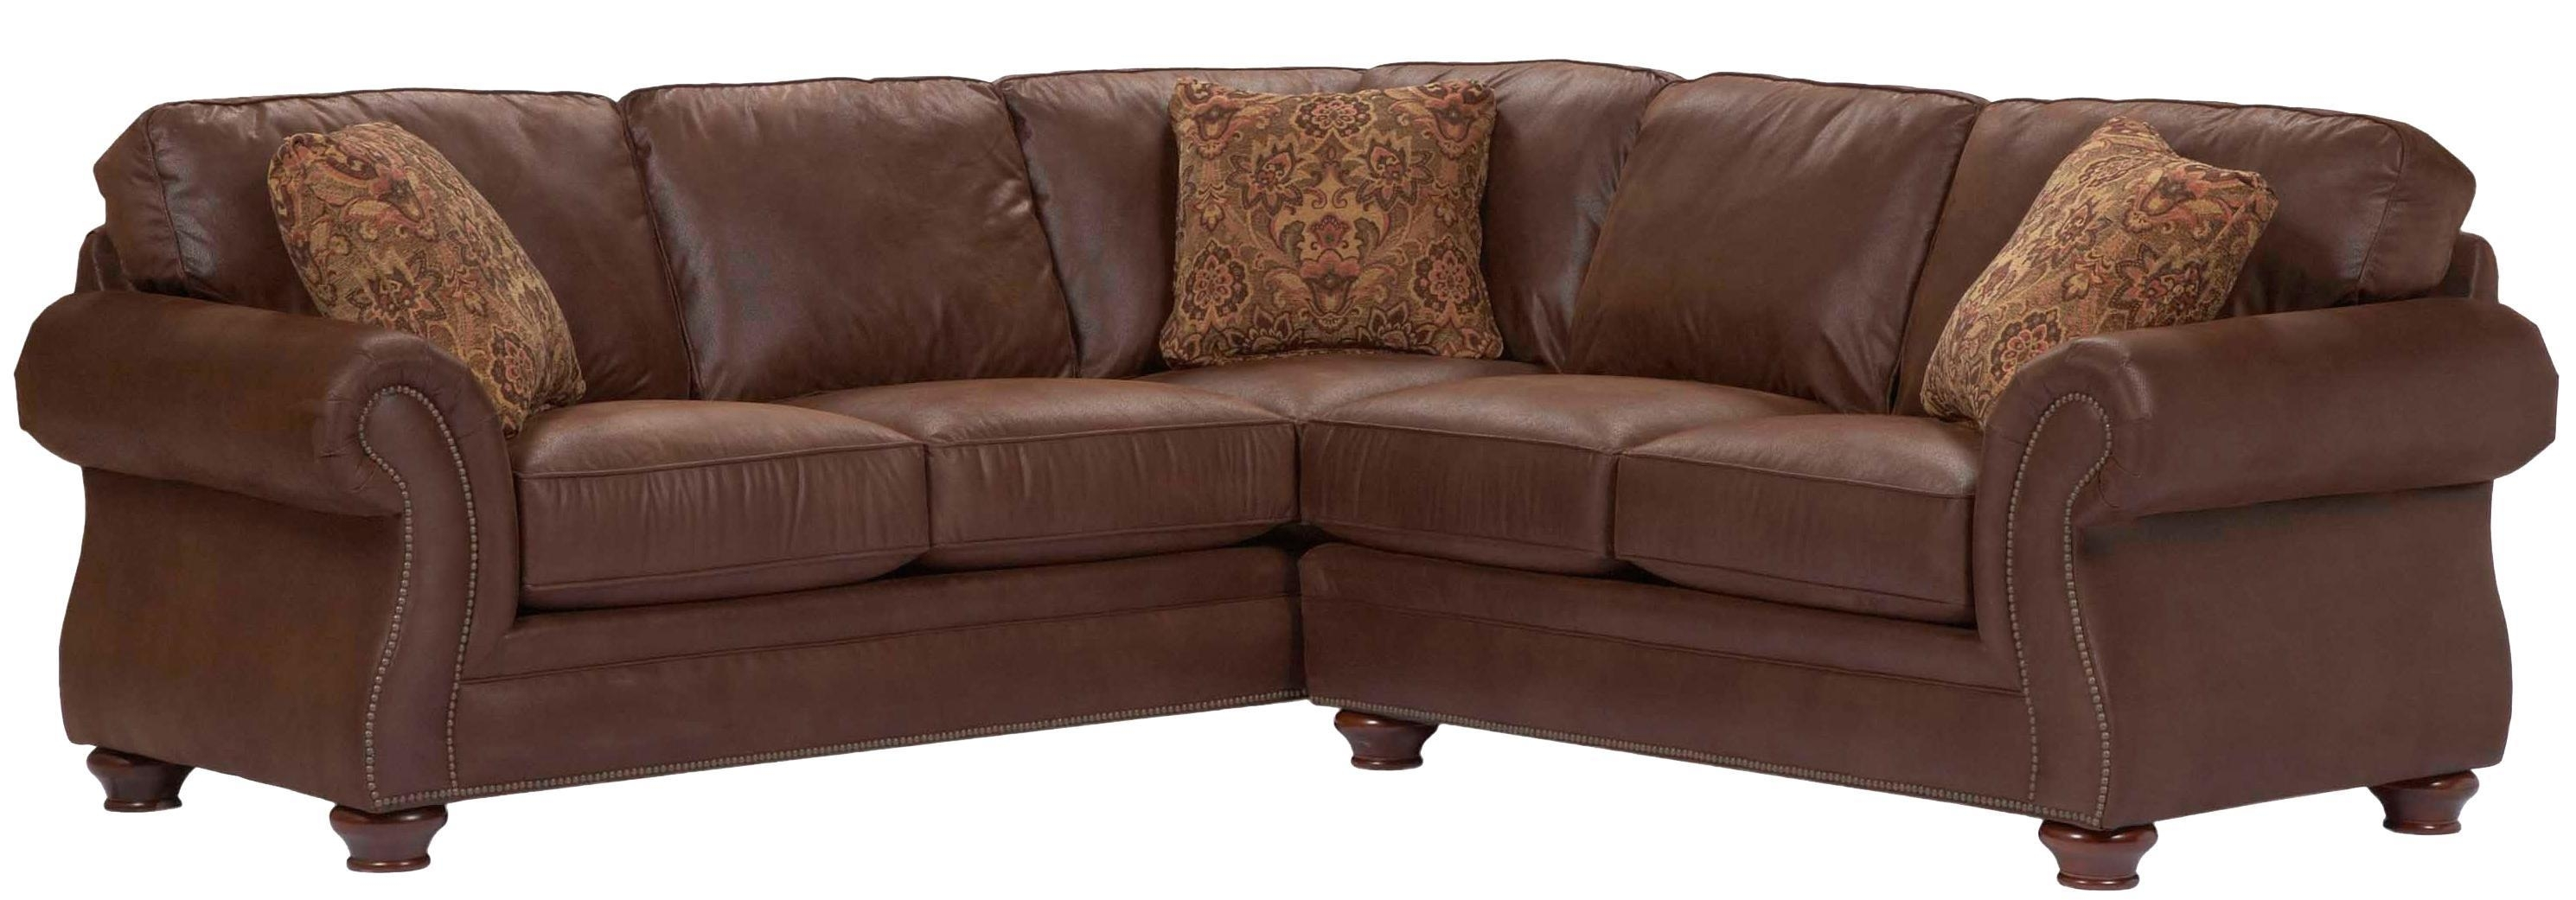 Broyhill Furniture Laramie 2 Piece Corner Sectional Sofa – Ahfa With Eau Claire Wi Sectional Sofas (Image 3 of 10)